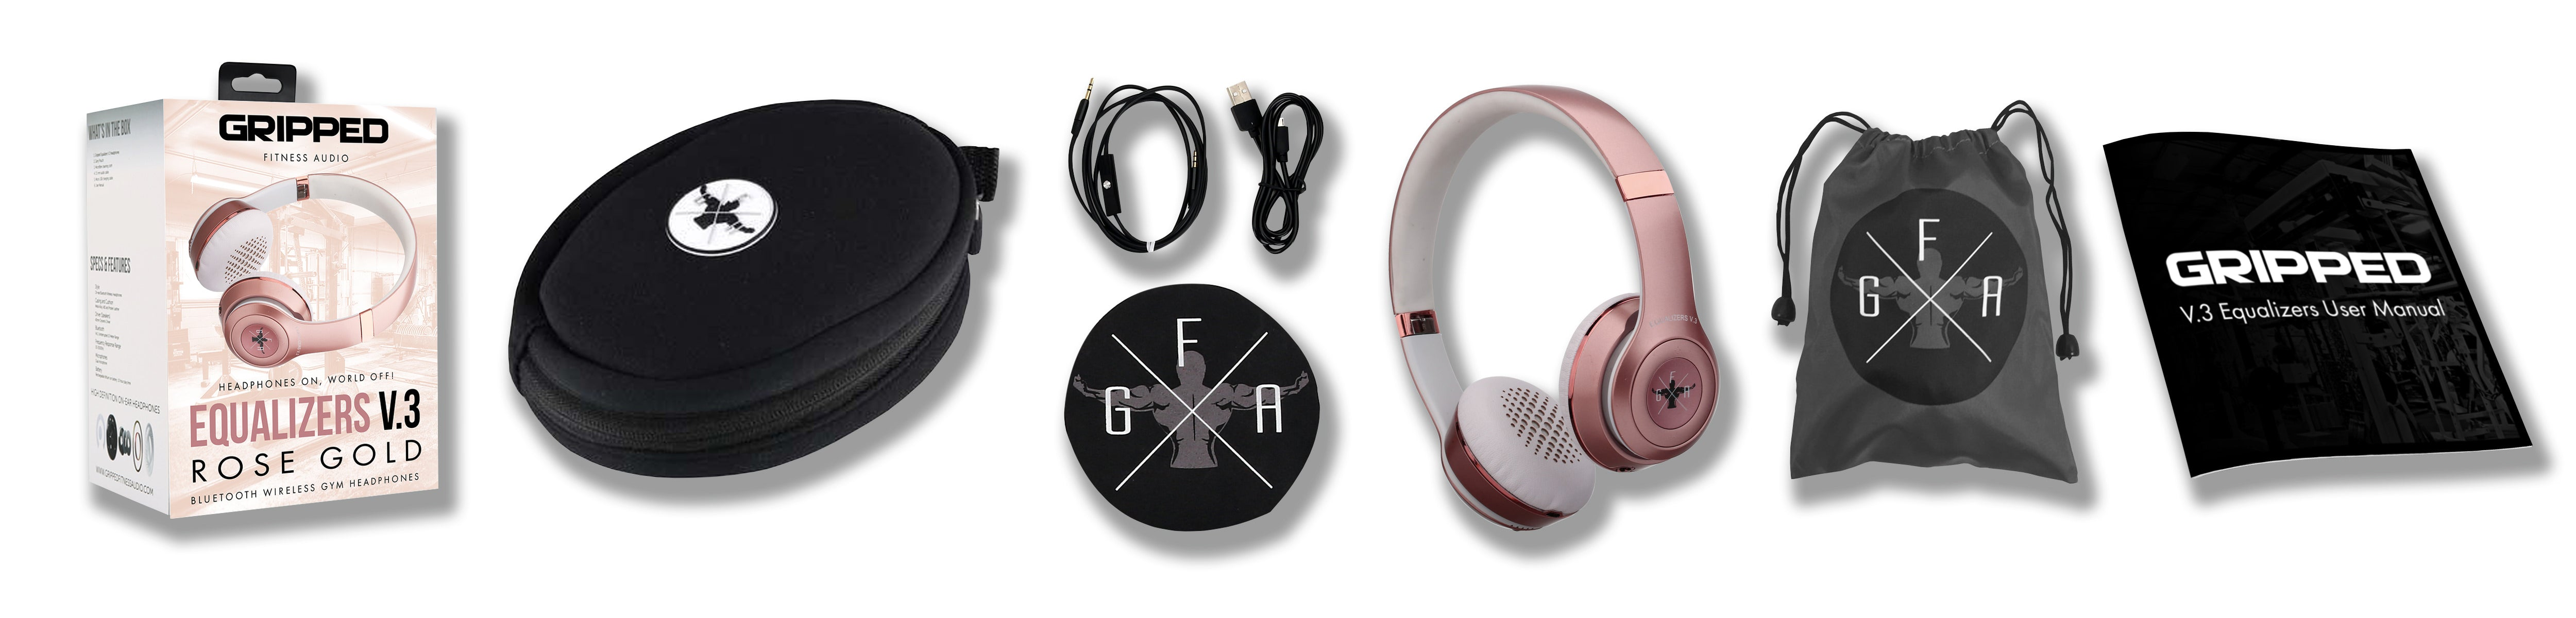 Wireless Gym Headphones Equalizers V.3 Rose Gold